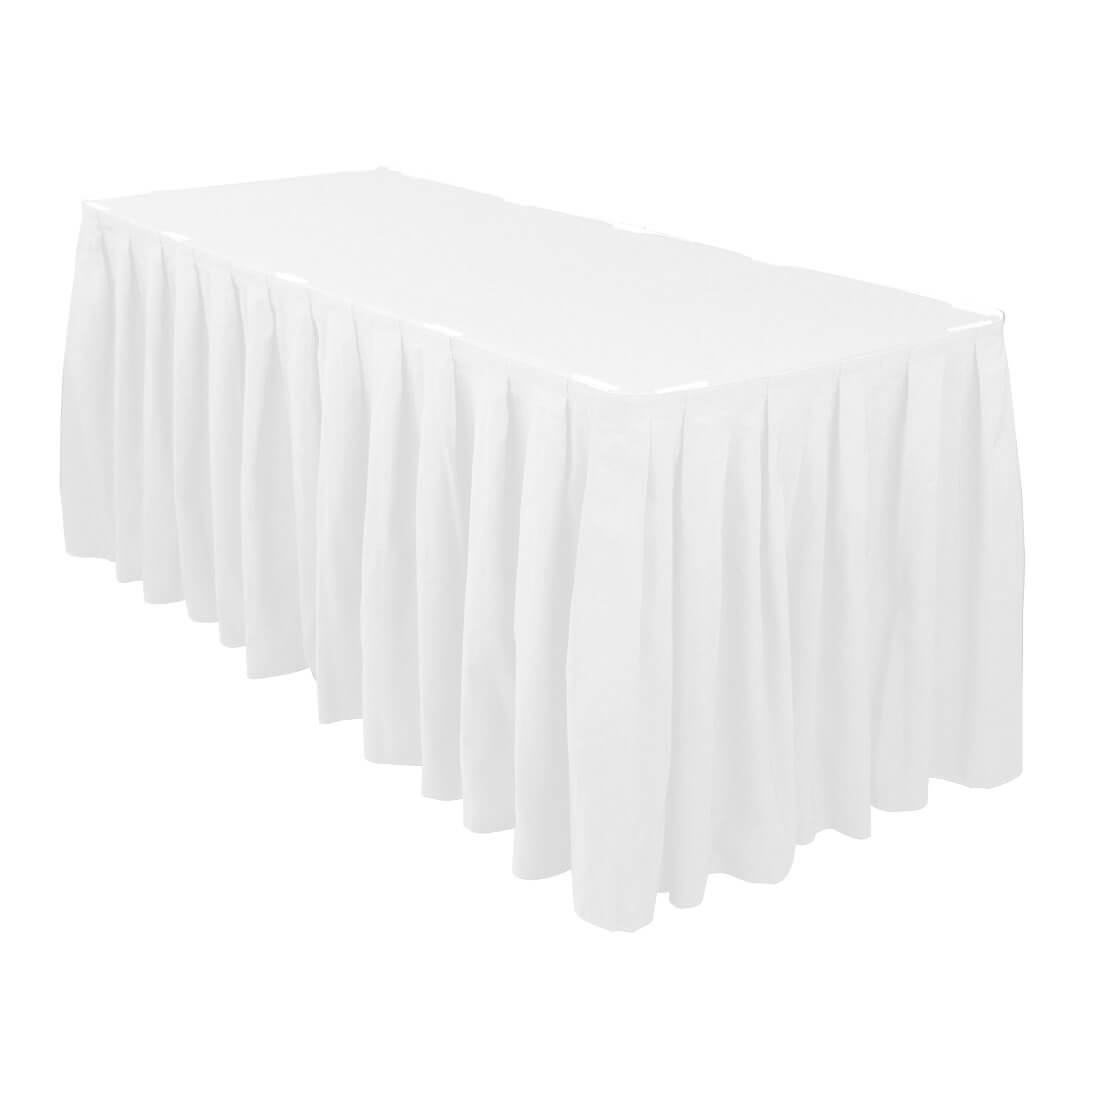 Banquet Table Skirt Rental in Warrenville